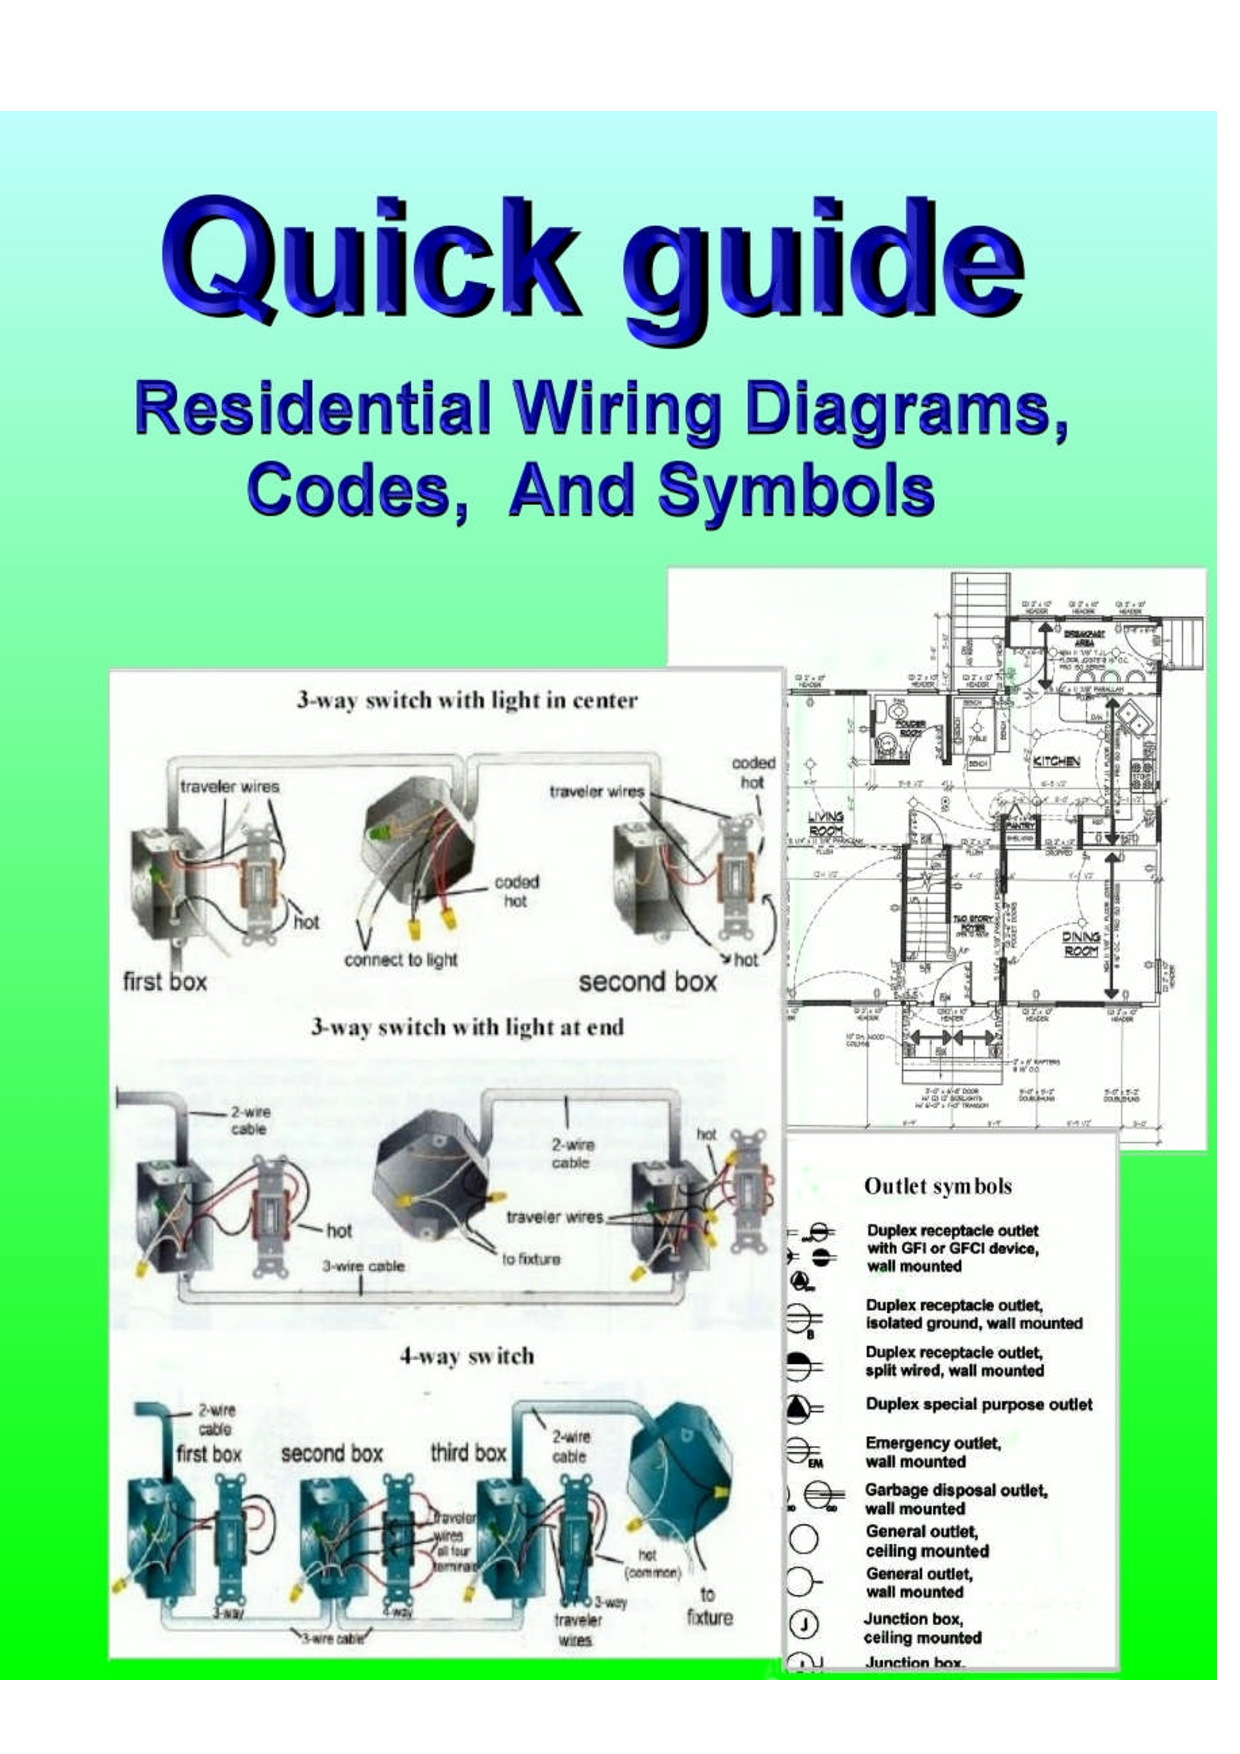 Home Electrical Wiring Diagramspdf Download Legal Documents 39 Conduit For Pages With Many Diagrams And Illustrations A Step By Guide